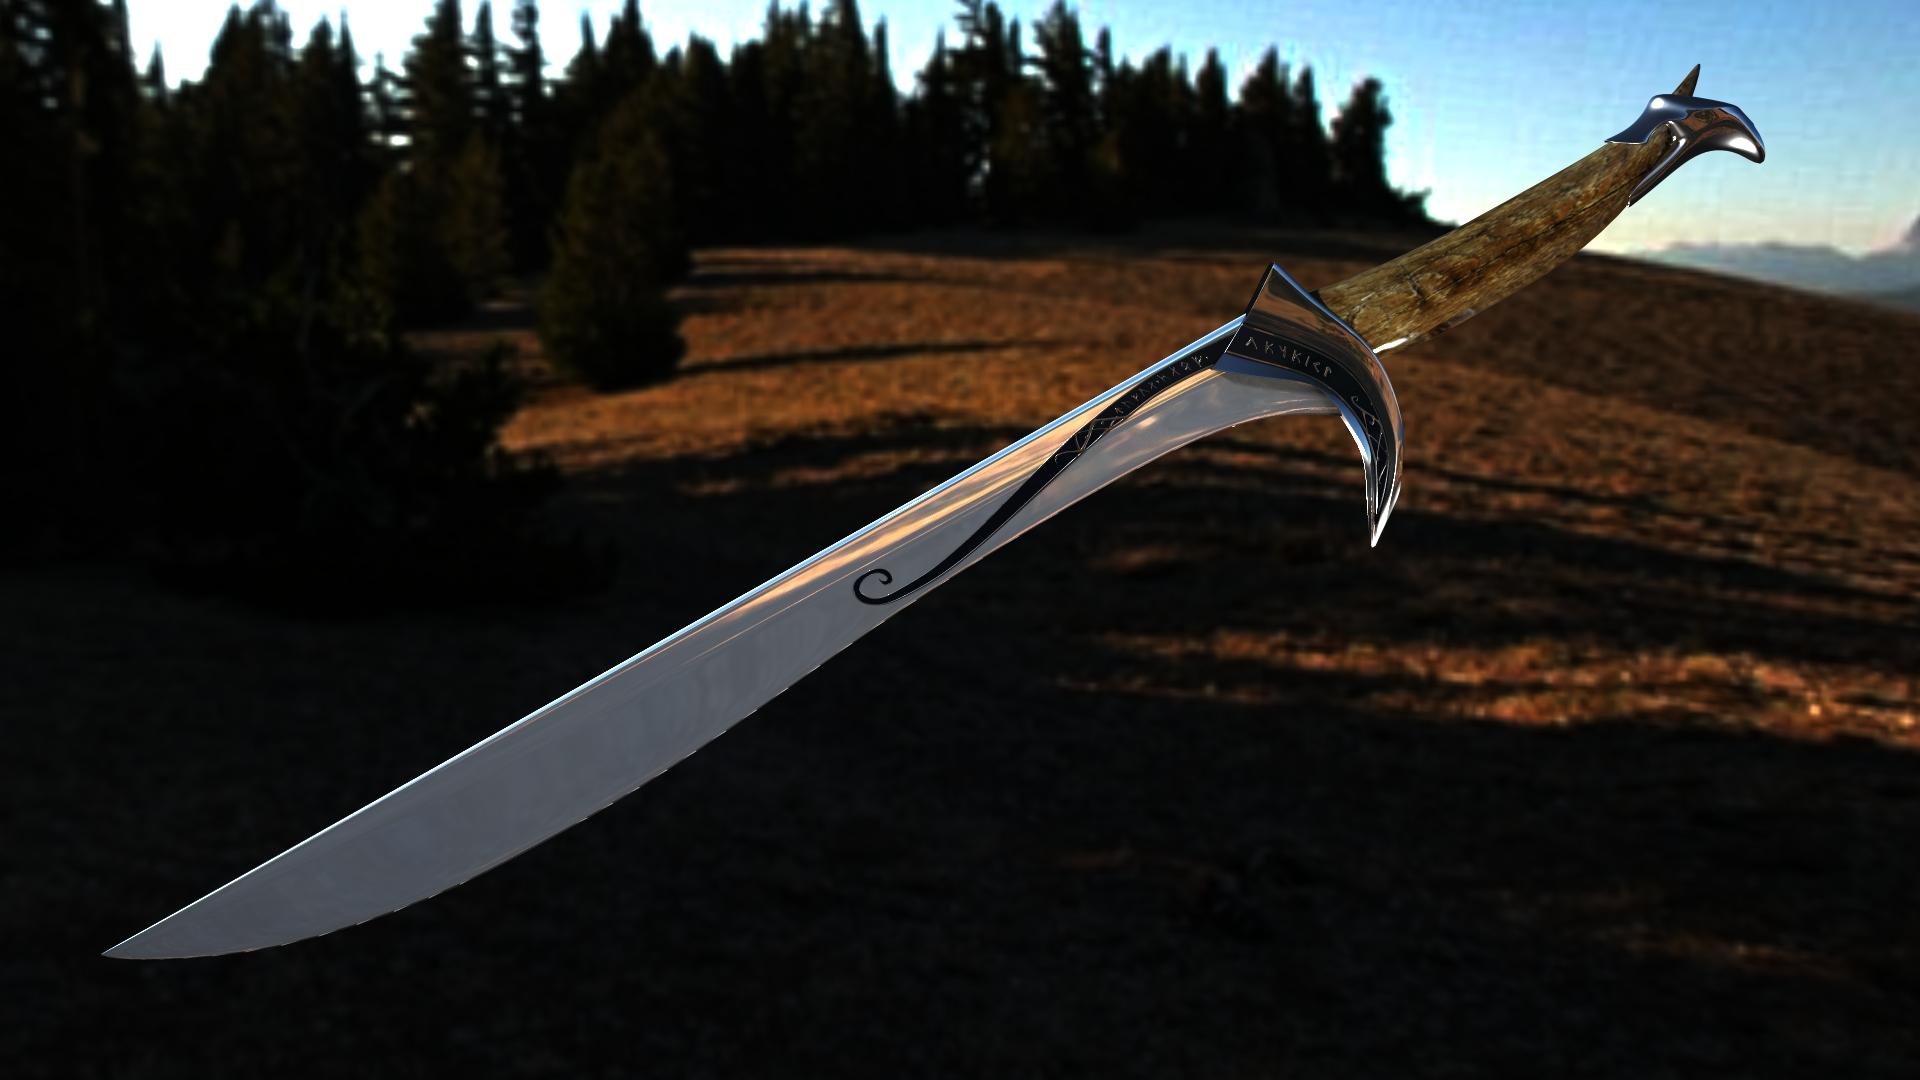 BillRogers-Thorins Sword 01.jpeg